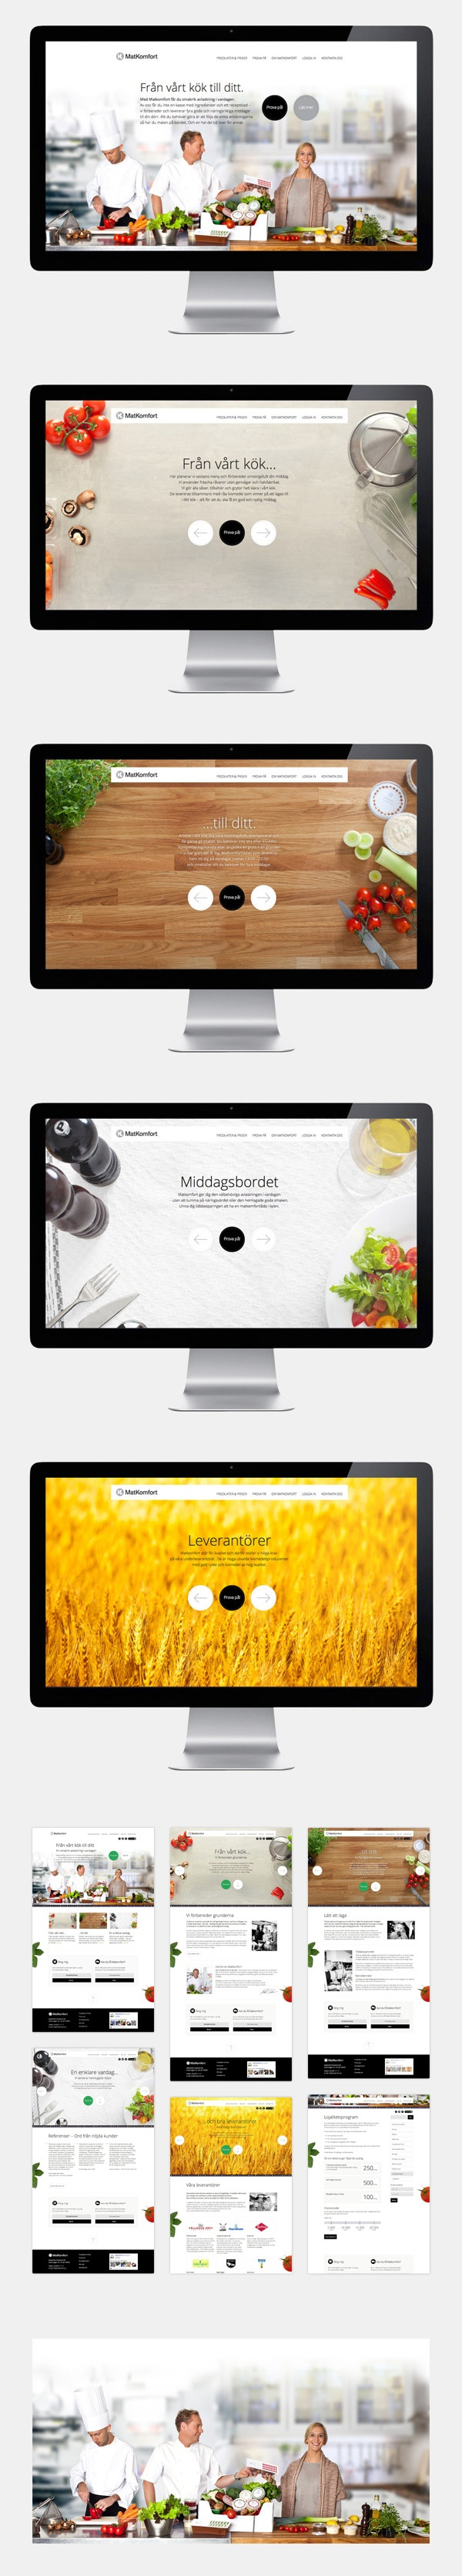 Matkomfort website by Erik Iggmark, via #Behance #Webdesign #Inspiration